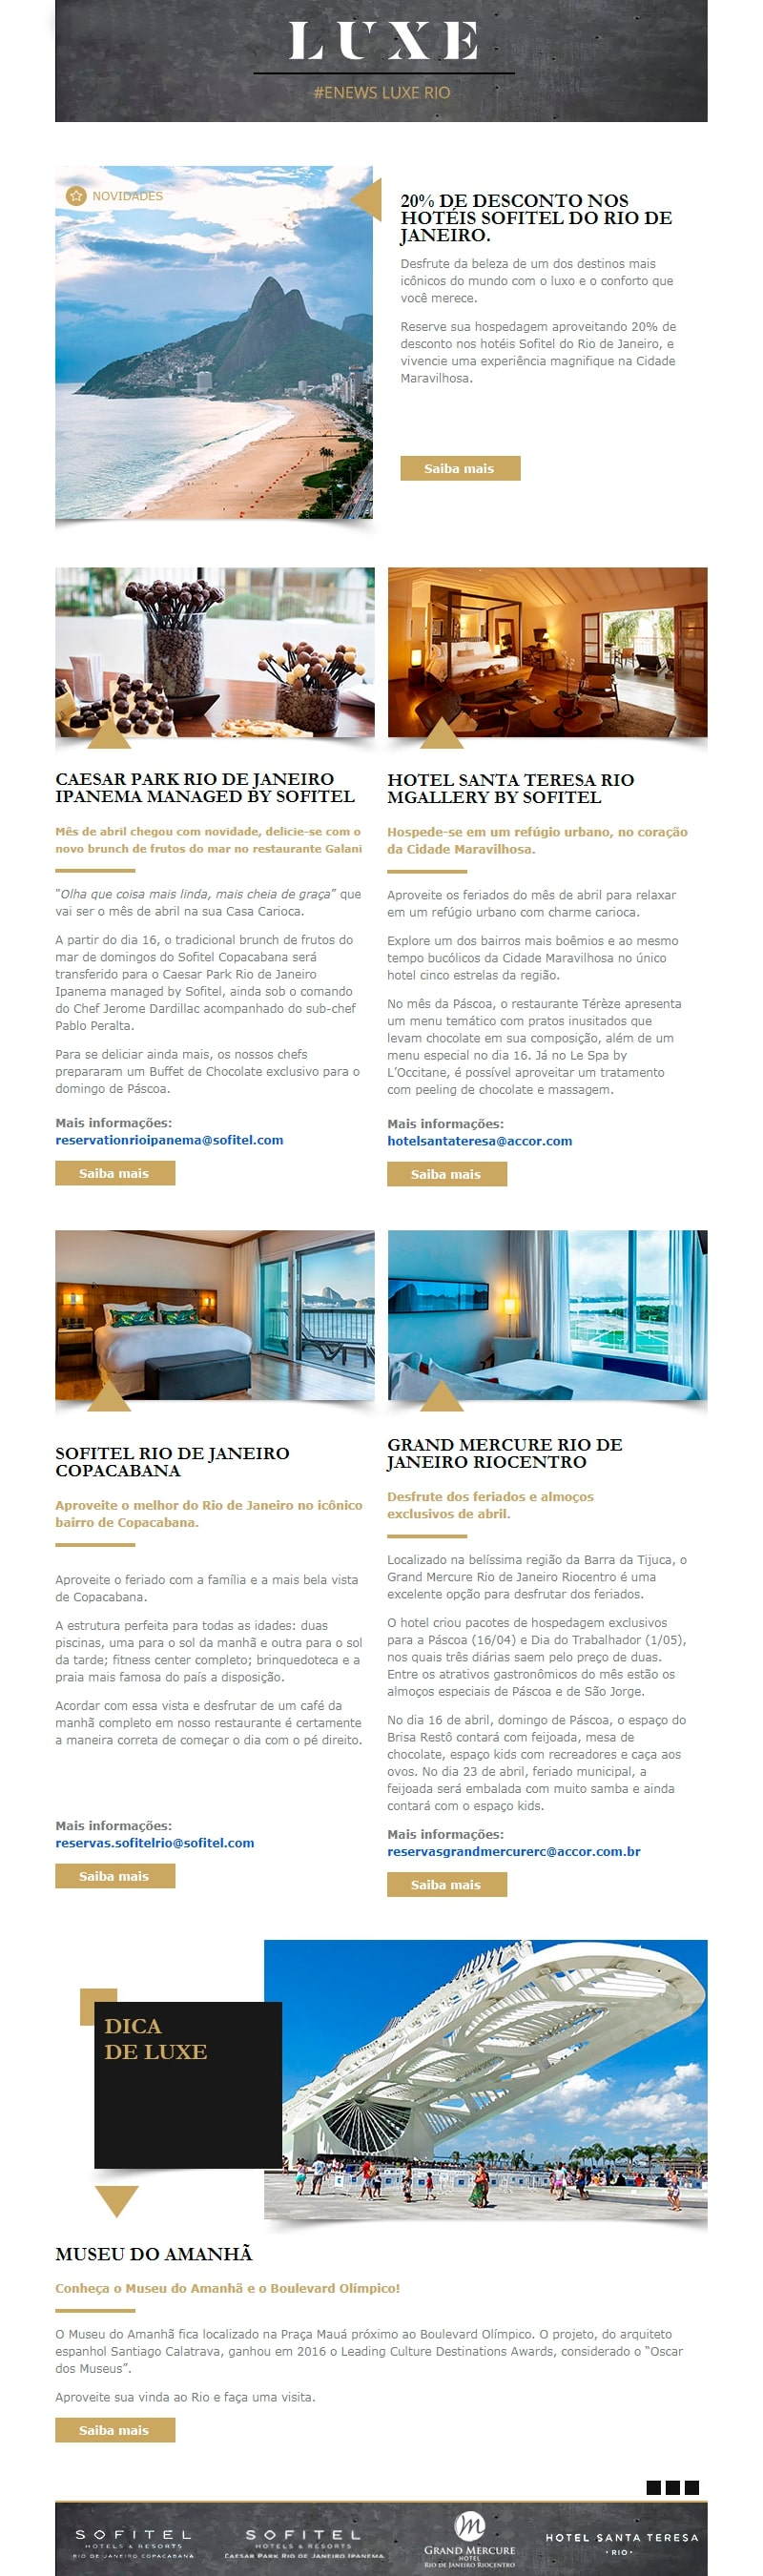 Accor - Création Newsletter LUXE - Template